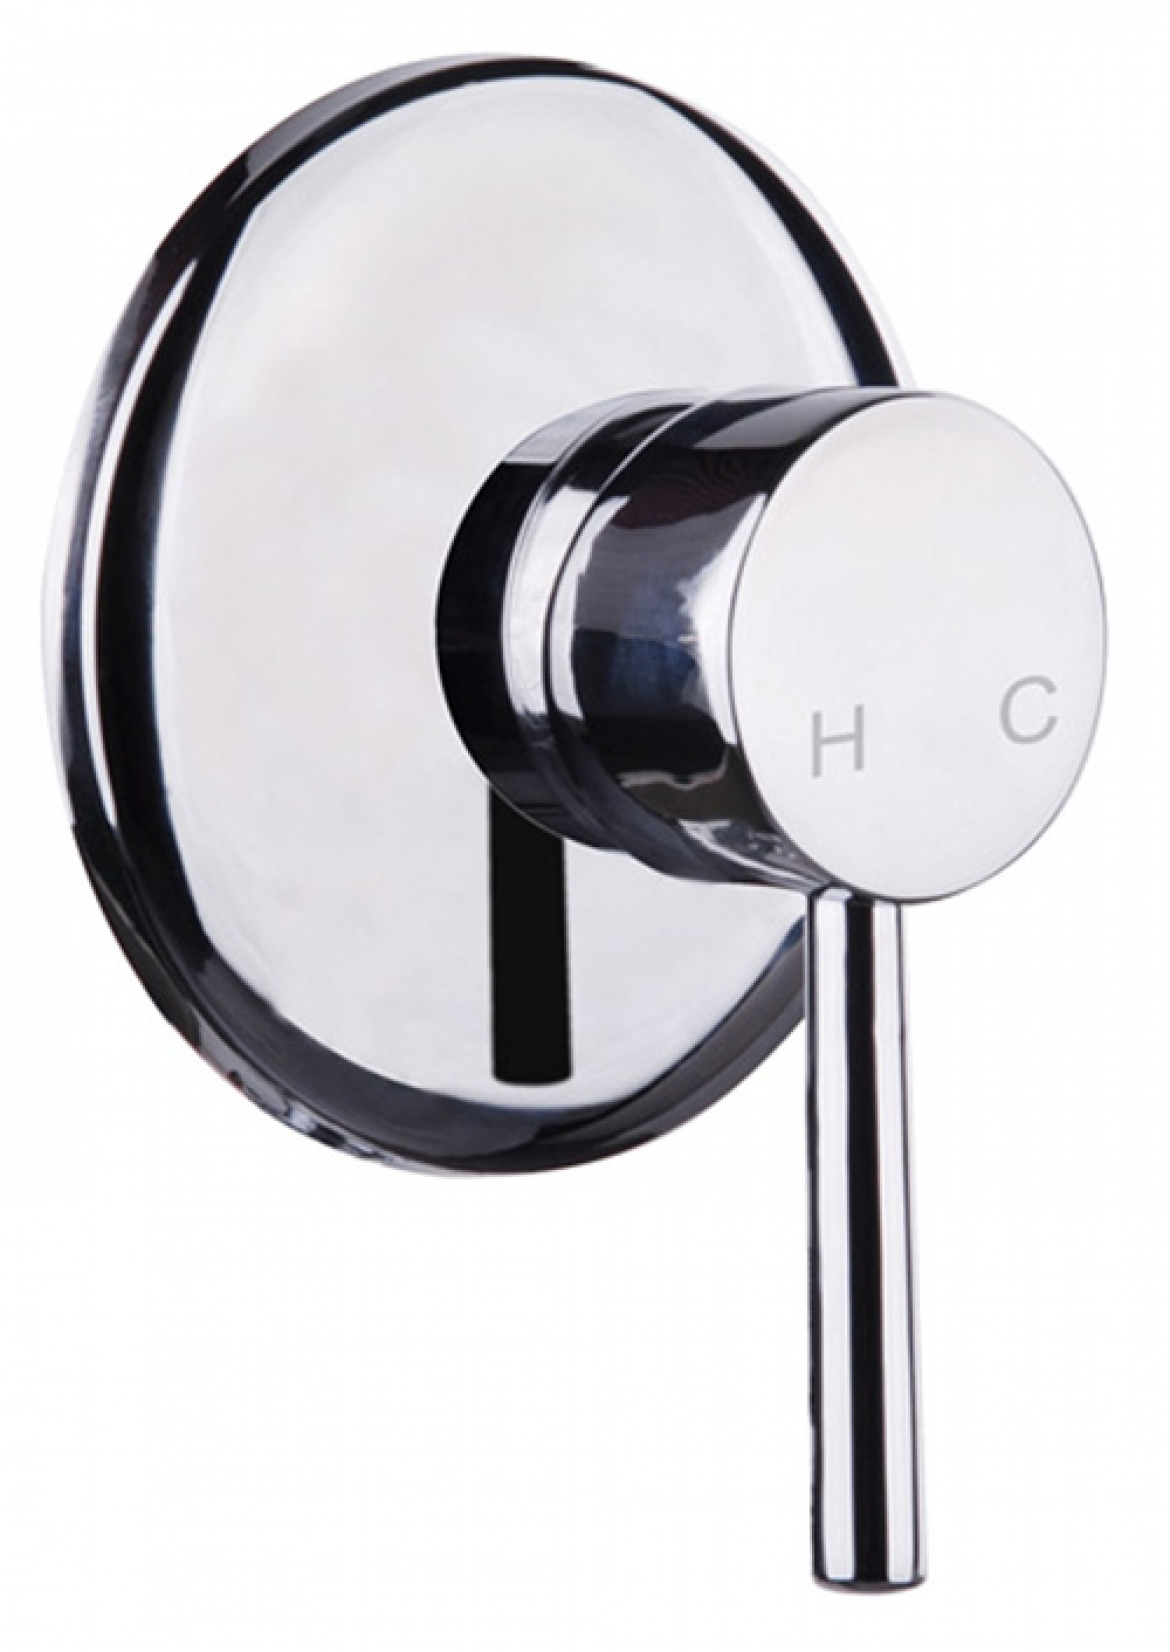 Round shower mixer-2